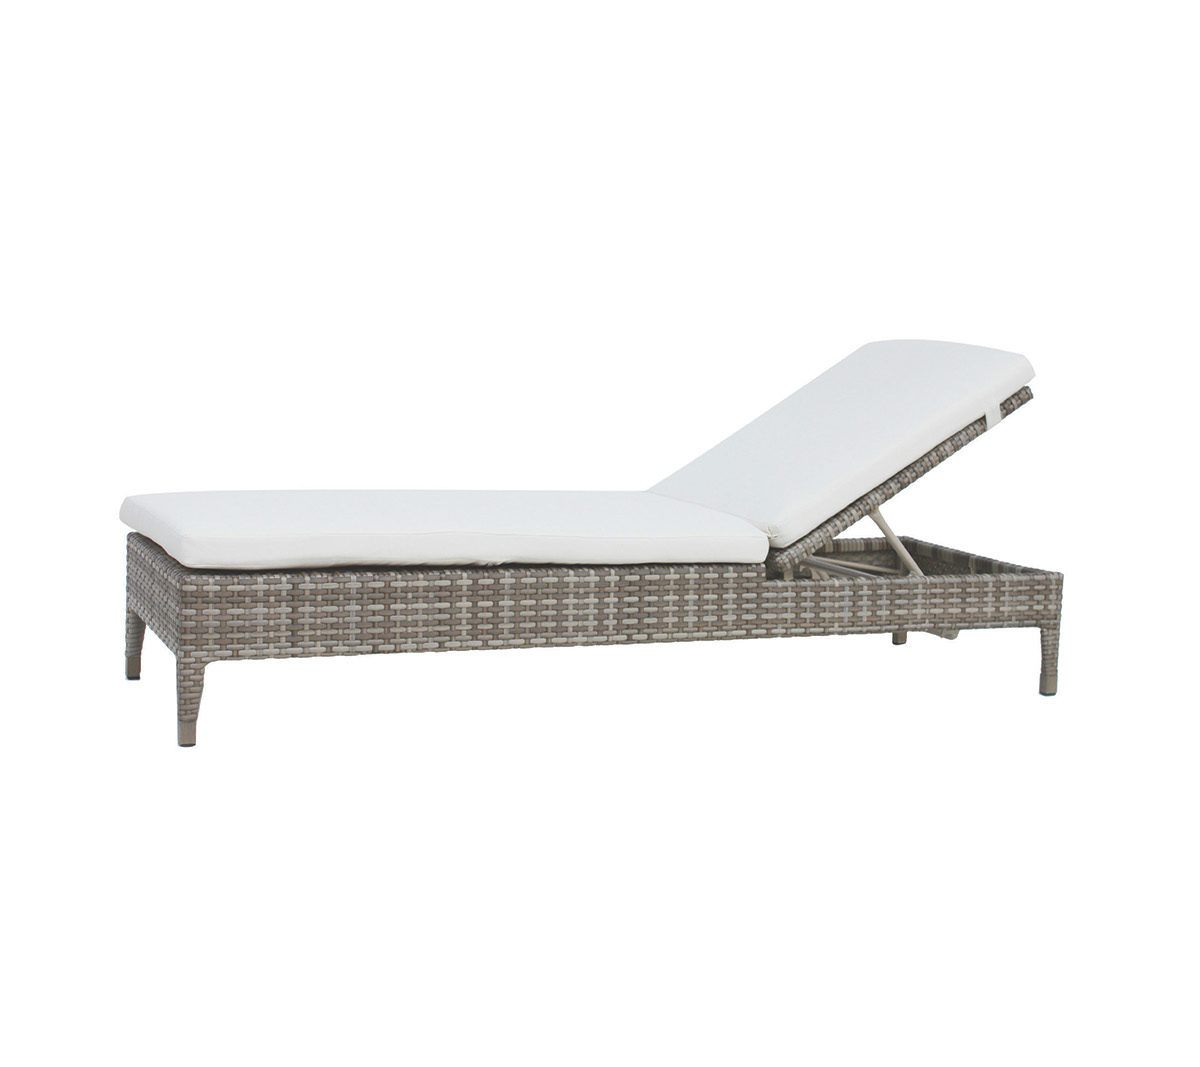 Ratana Tuscany adjustable lounger in taupe wicker with cream cushion.